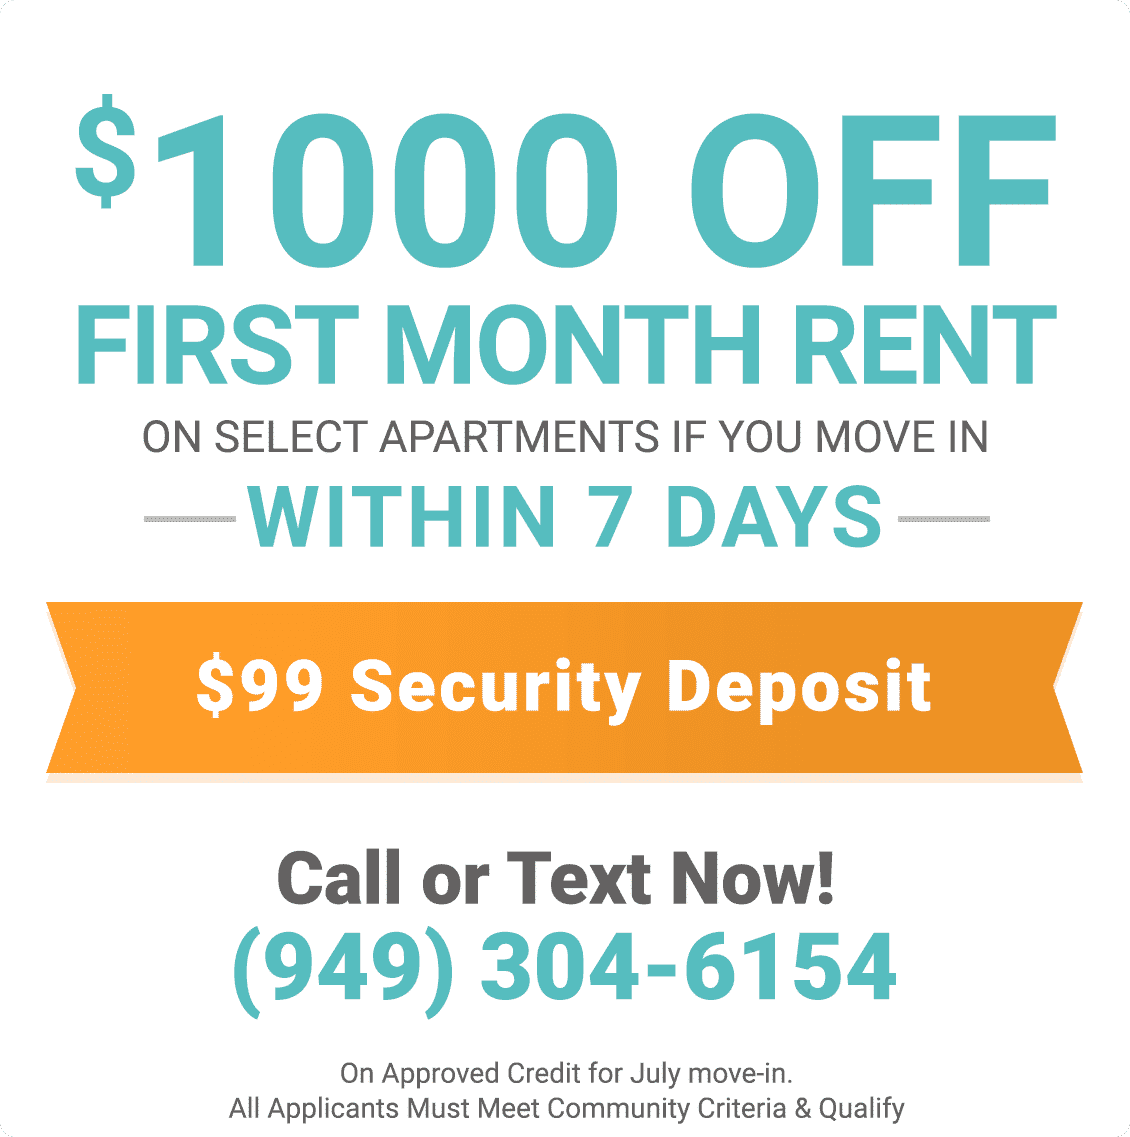 $1,000 Off First Month Rent on select apartments if you move in within 7 days! & $99 Security Deposit On Approved Credit for July Move In. All Applicants Must Meet Community Criteria & Qualify.